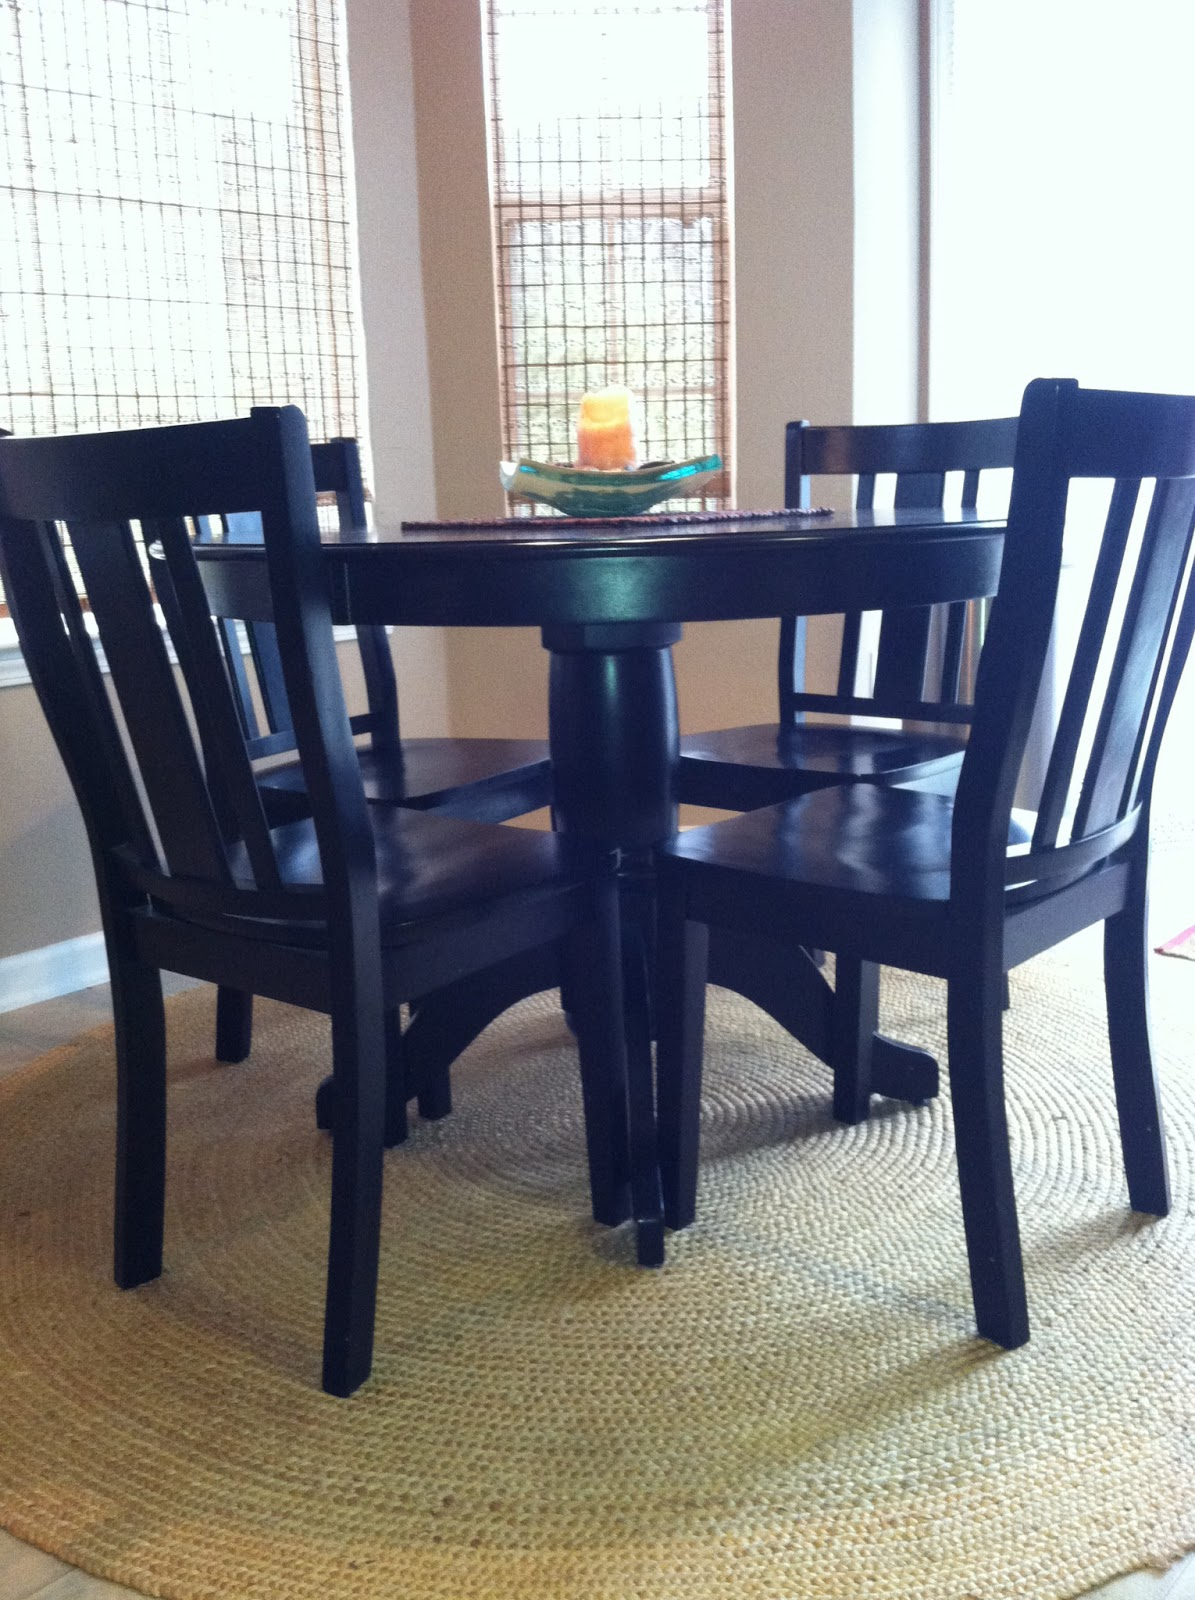 FOR SALE by mle: SOLD...Dining Table and Chairs